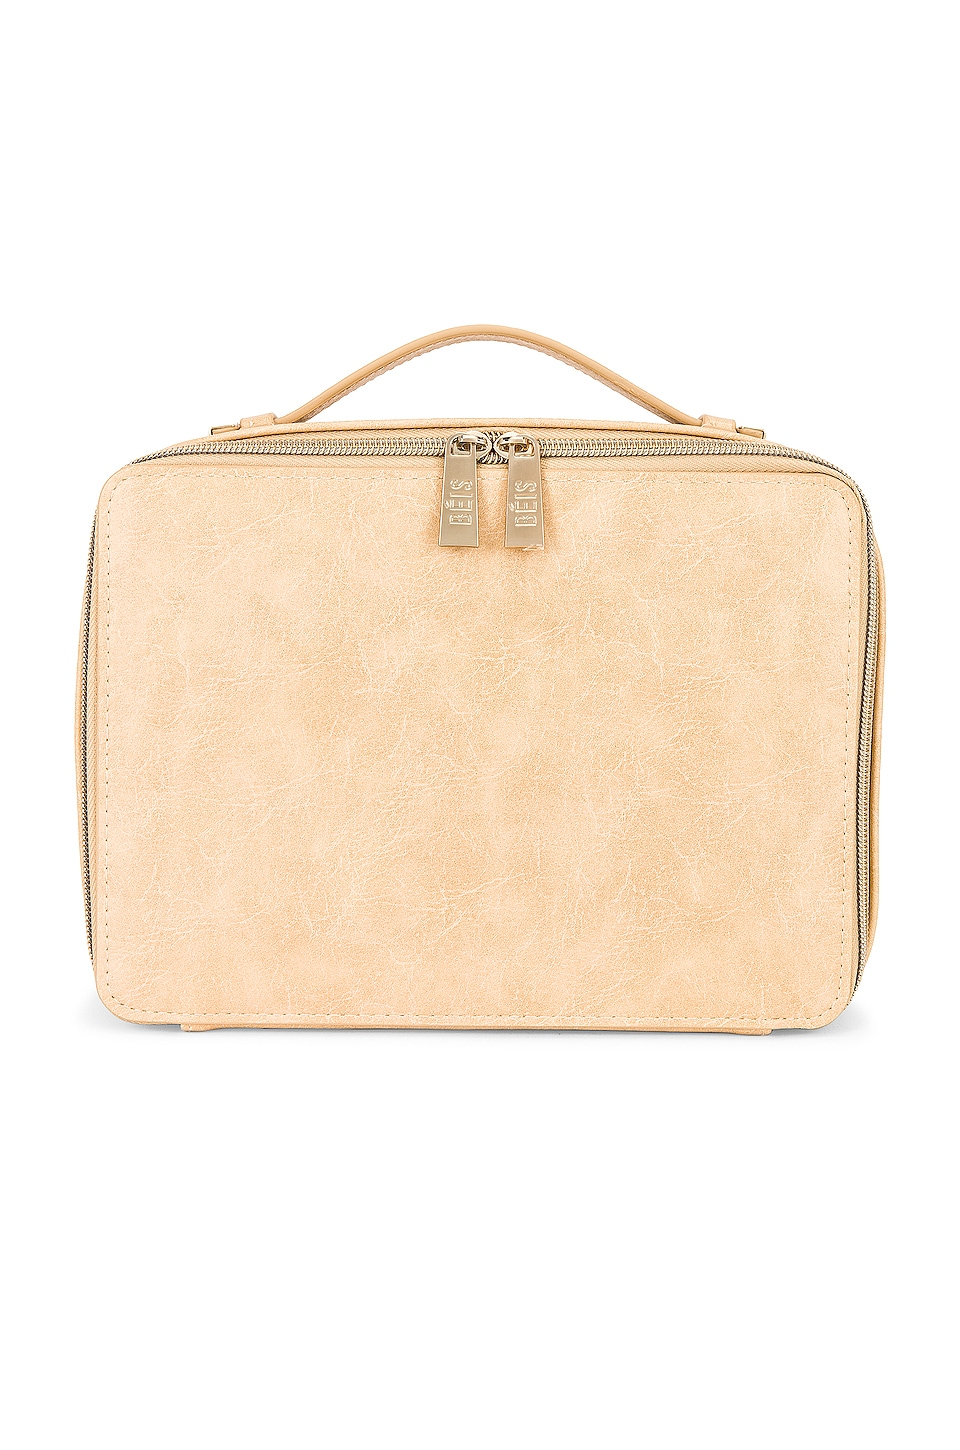 BEIS Cosmetic Case in Beige